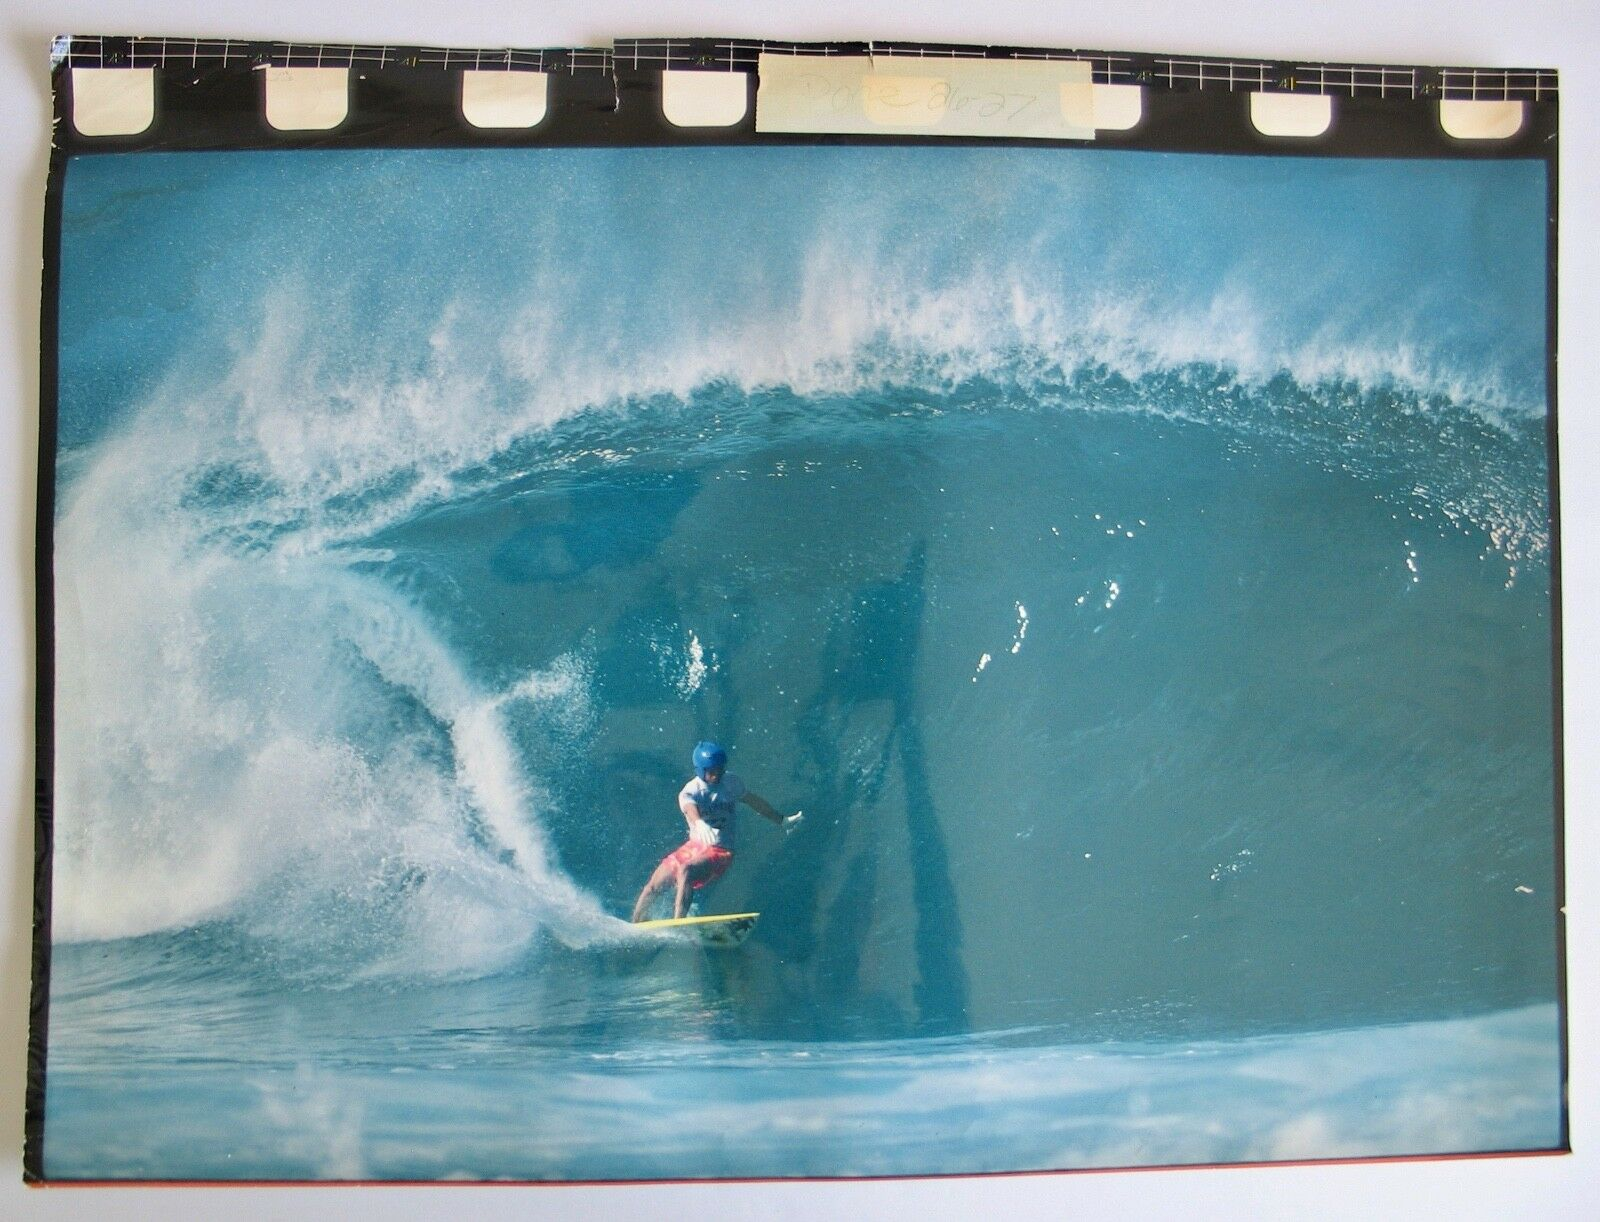 Vintage 1988 Original Photograph Breakout Surf Magazine Vol 8 No 4 Surfboard 12